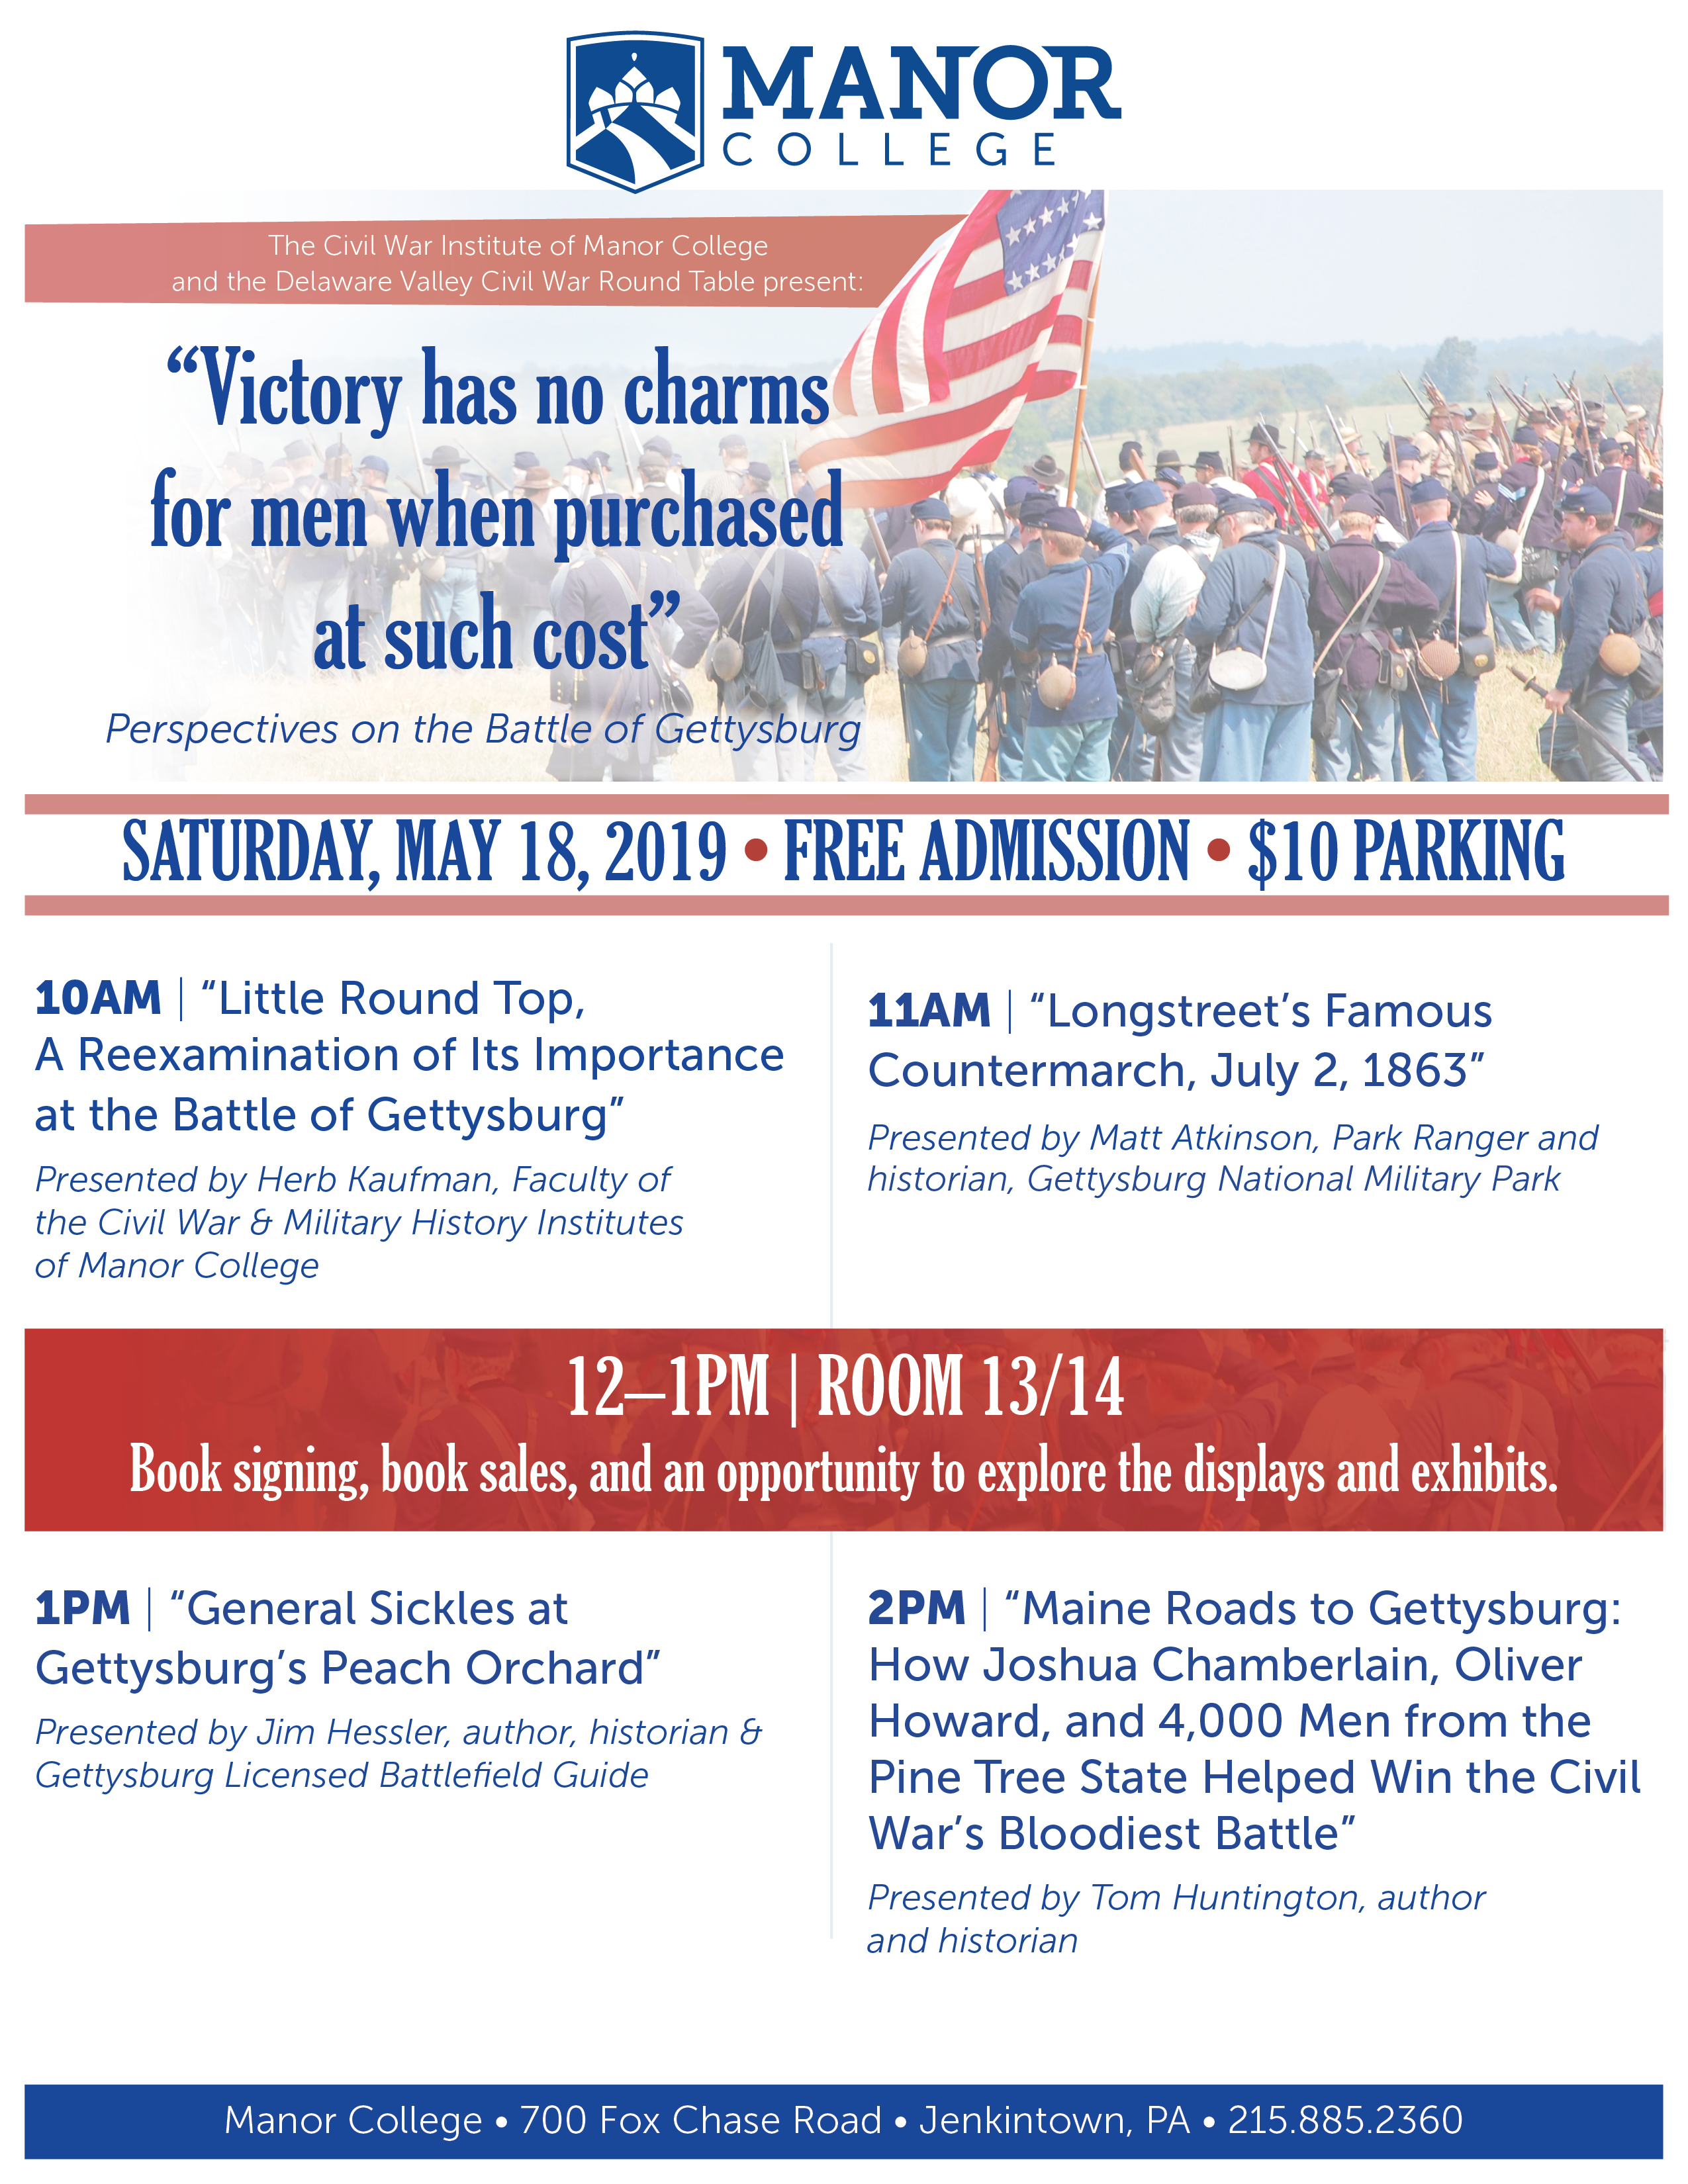 Gettysburg Day of History at Manor College in Jenkintown